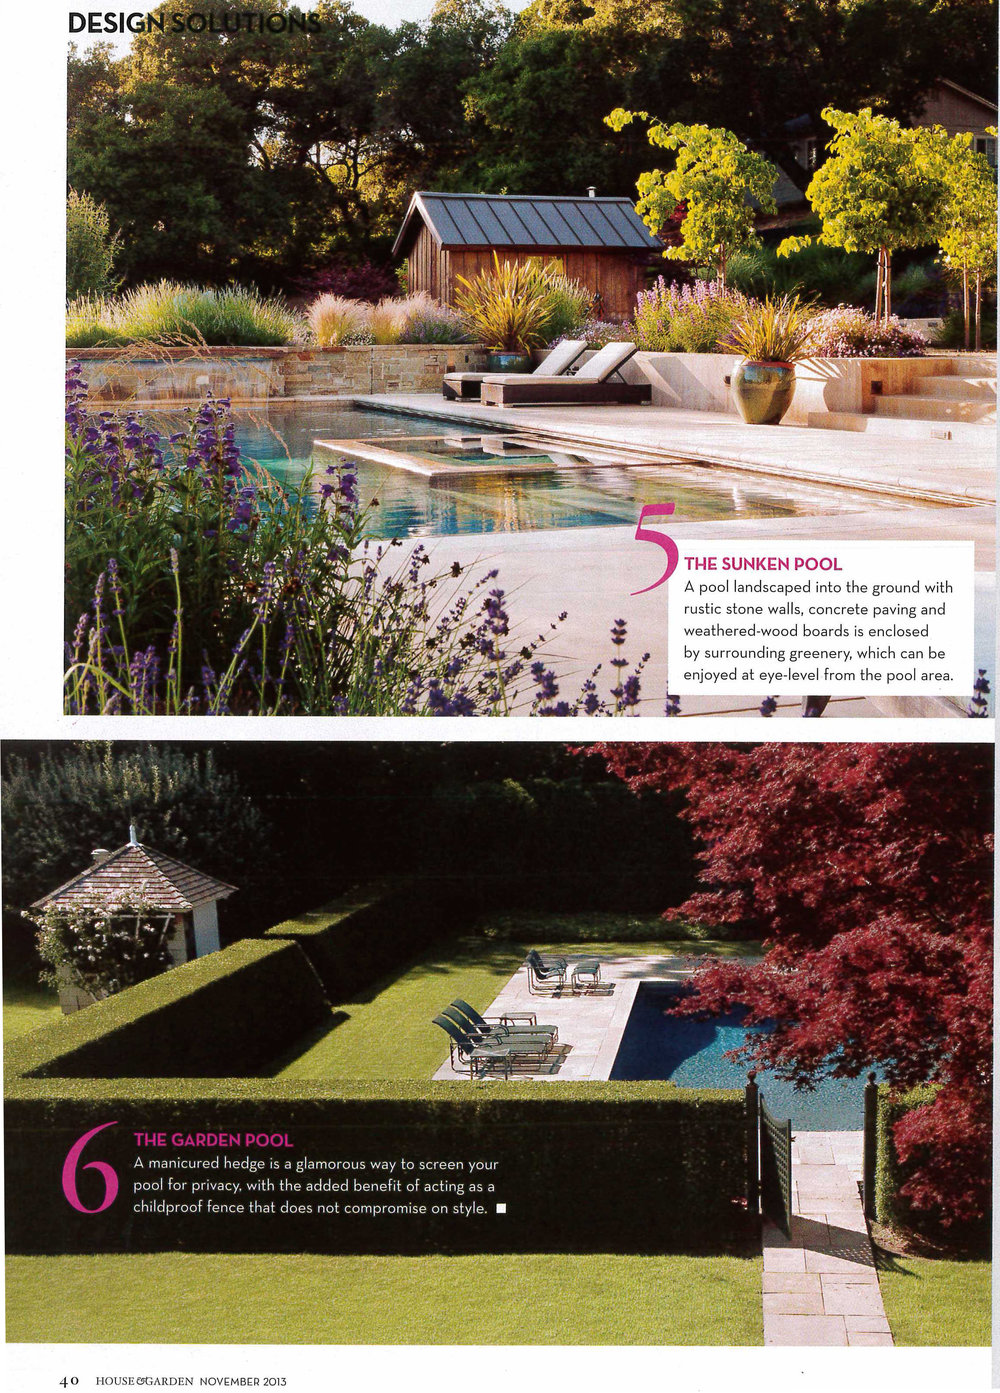 The pool at Whiskey Hill is featured in South Africa's House & Garden